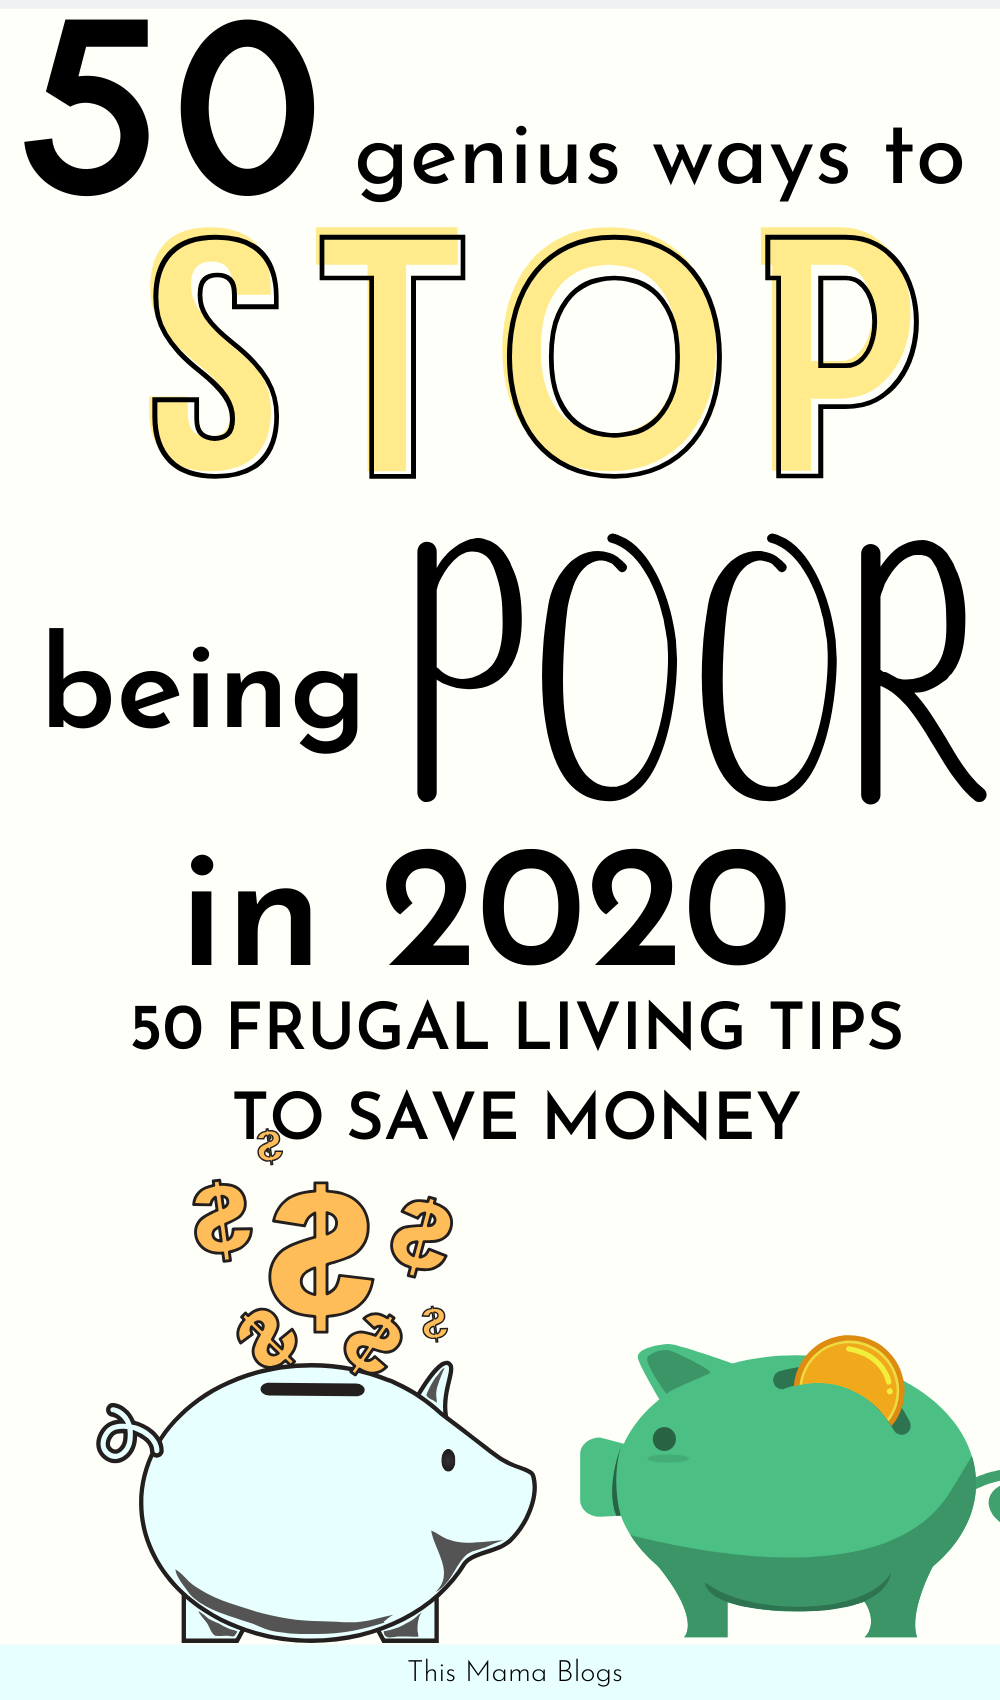 Looking for practical frugal living tips that work? Looking for ways to save money without having to give up on many things? Try these genius money saving tips to help you stop being poor in 2020! Frugal living is not about not spending money. It's about being resourceful so you can focus your money on important things that matter most to you. In this post, I will show you a few frugal living tips and tricks that will help you save a lot of money and transform your life in 2020